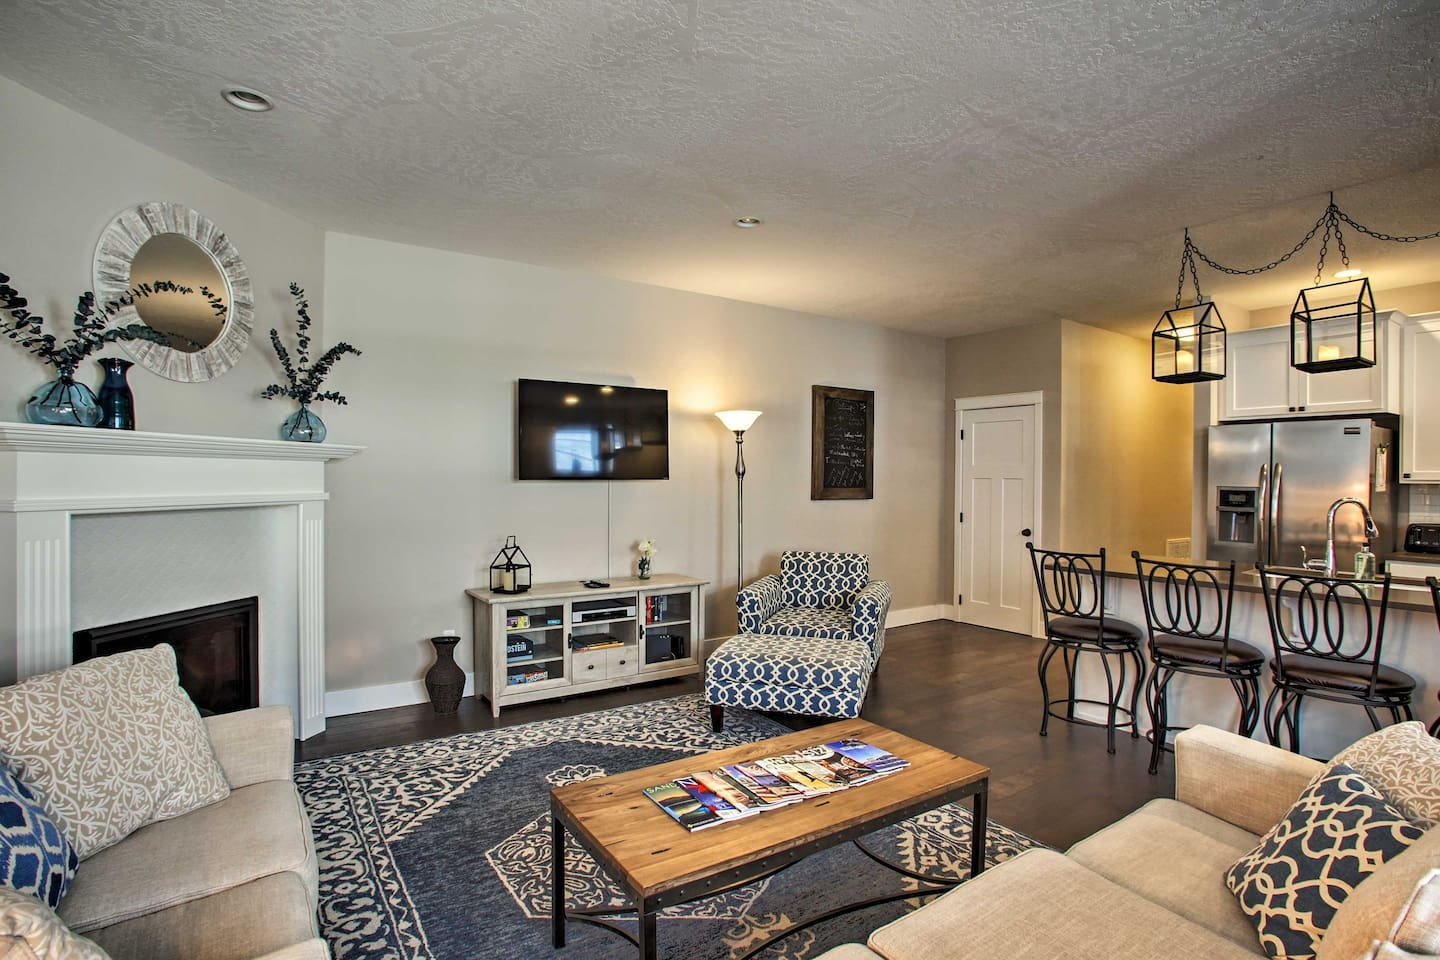 Have a relaxing getaway in this 4-bedroom, 2.5-bath vacation rental home for 10.